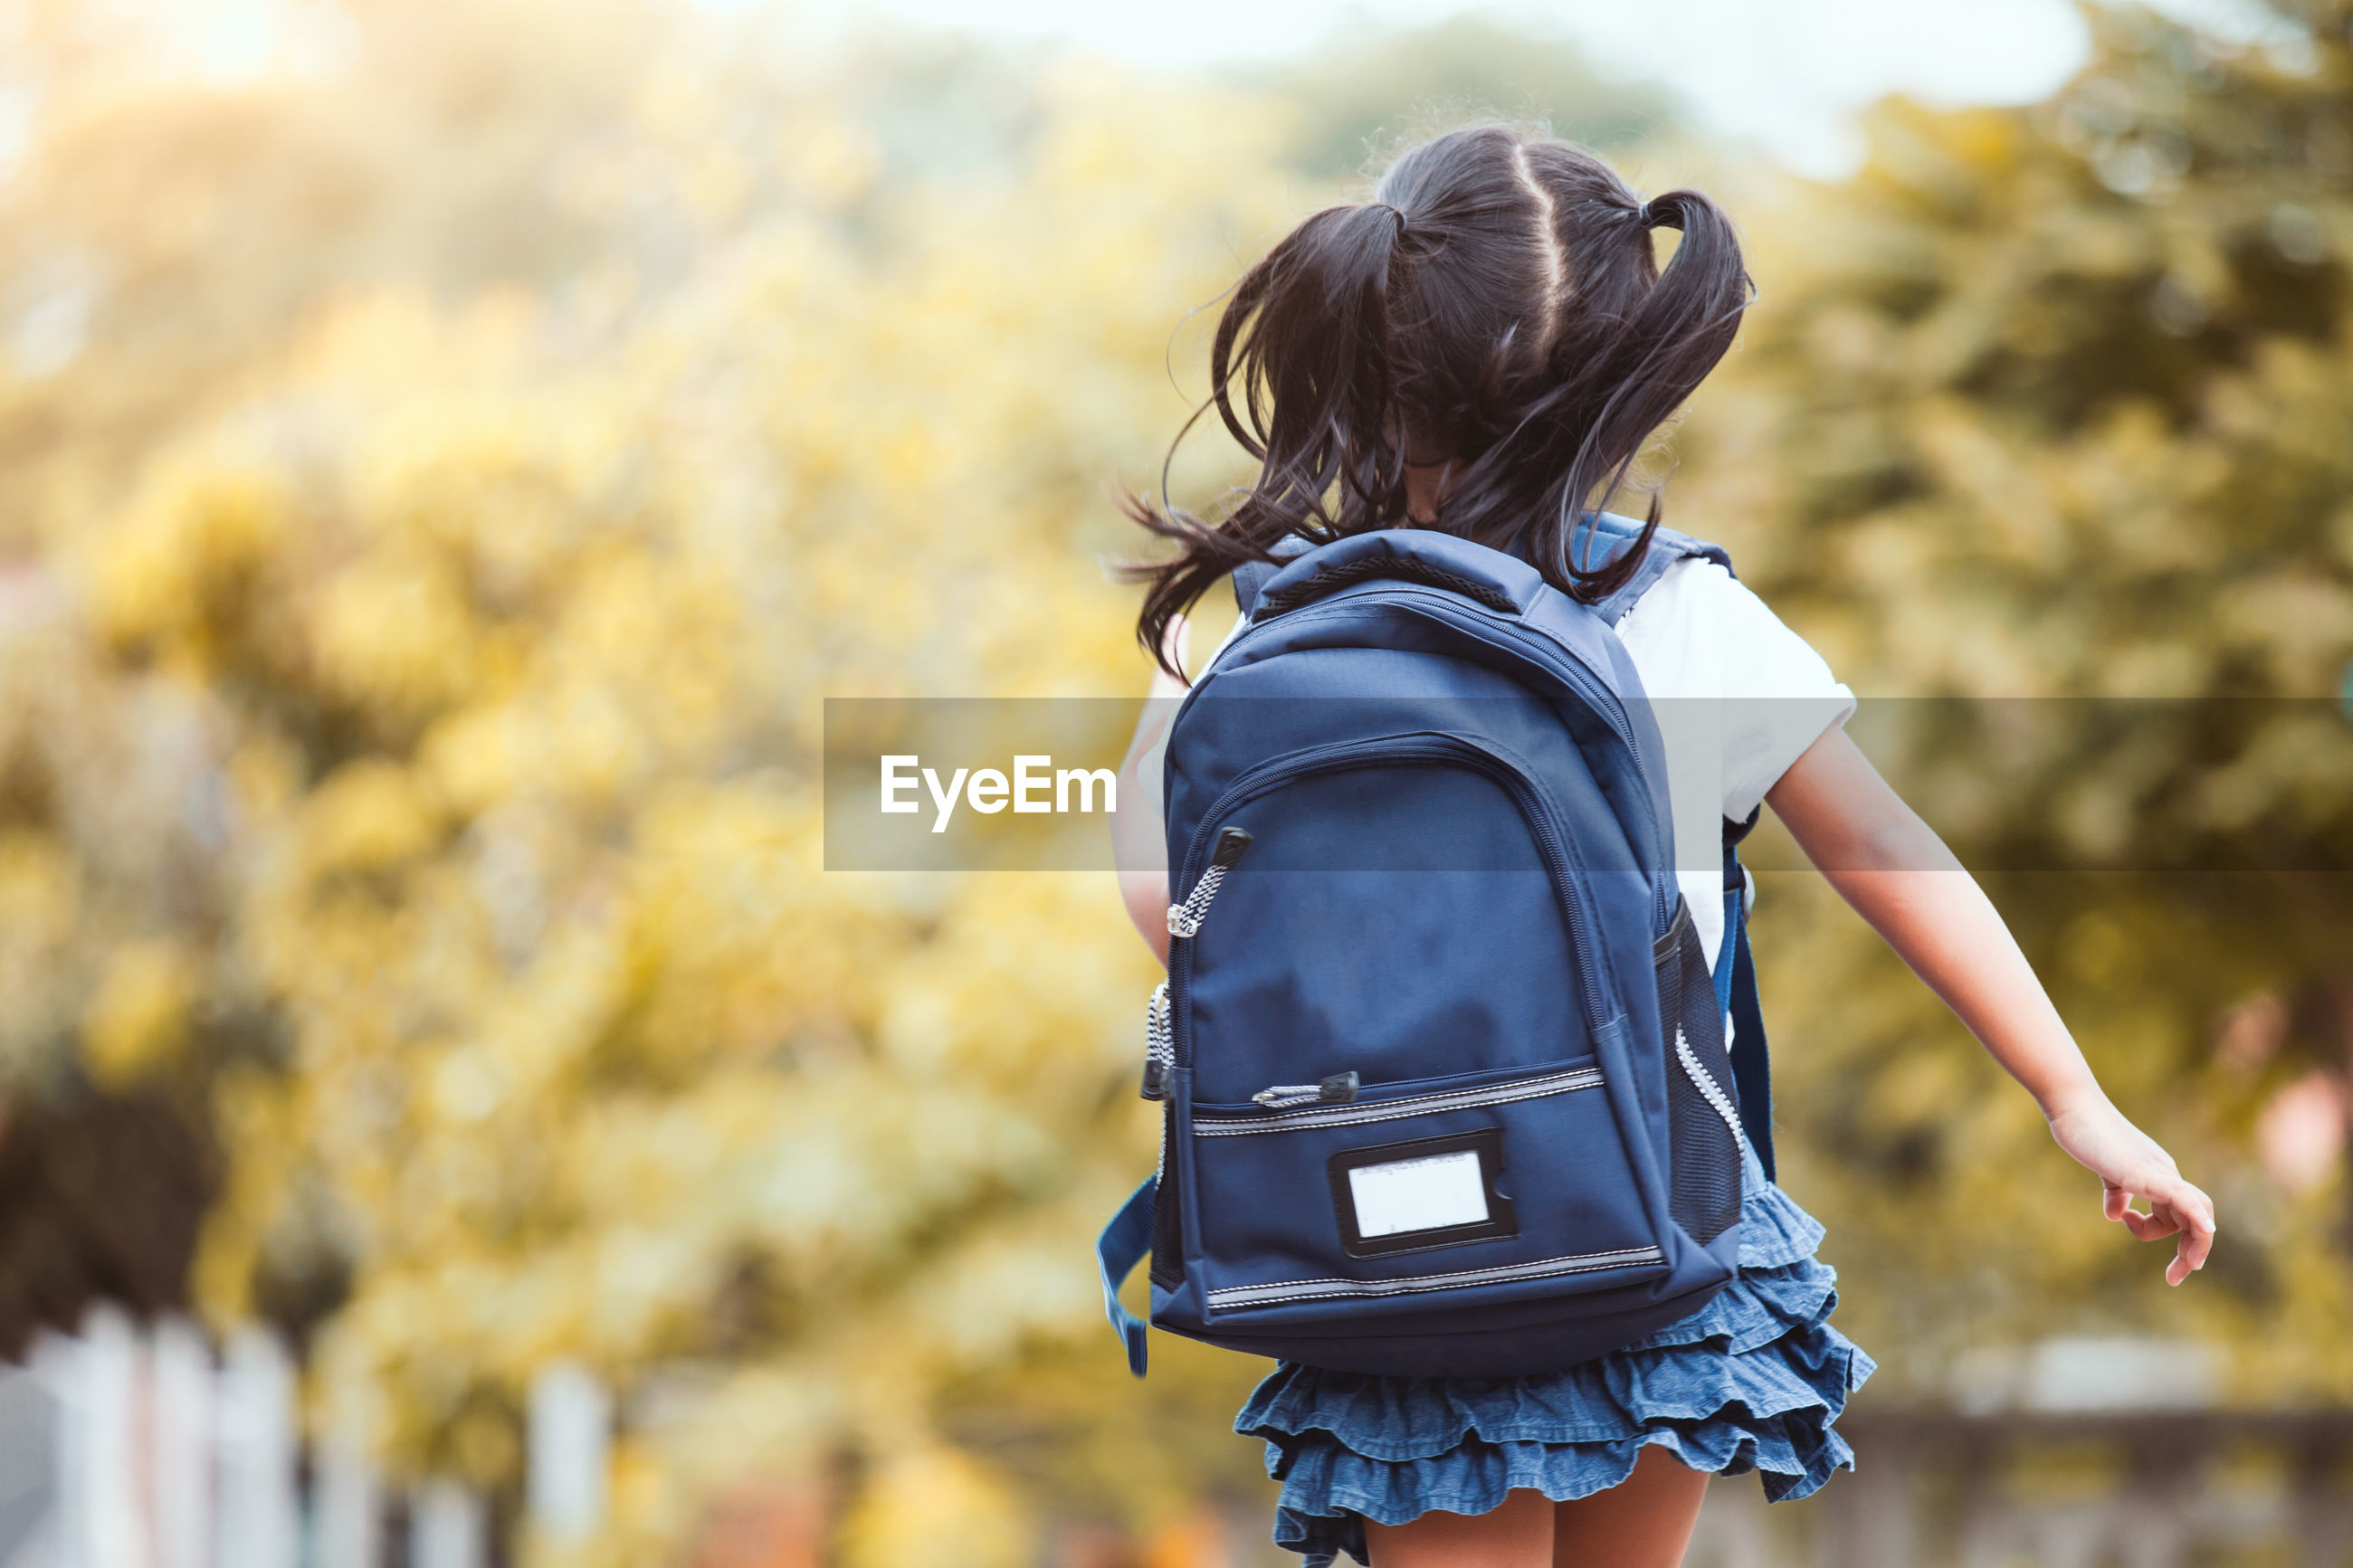 Rear view of girl wearing backpack while walking against trees